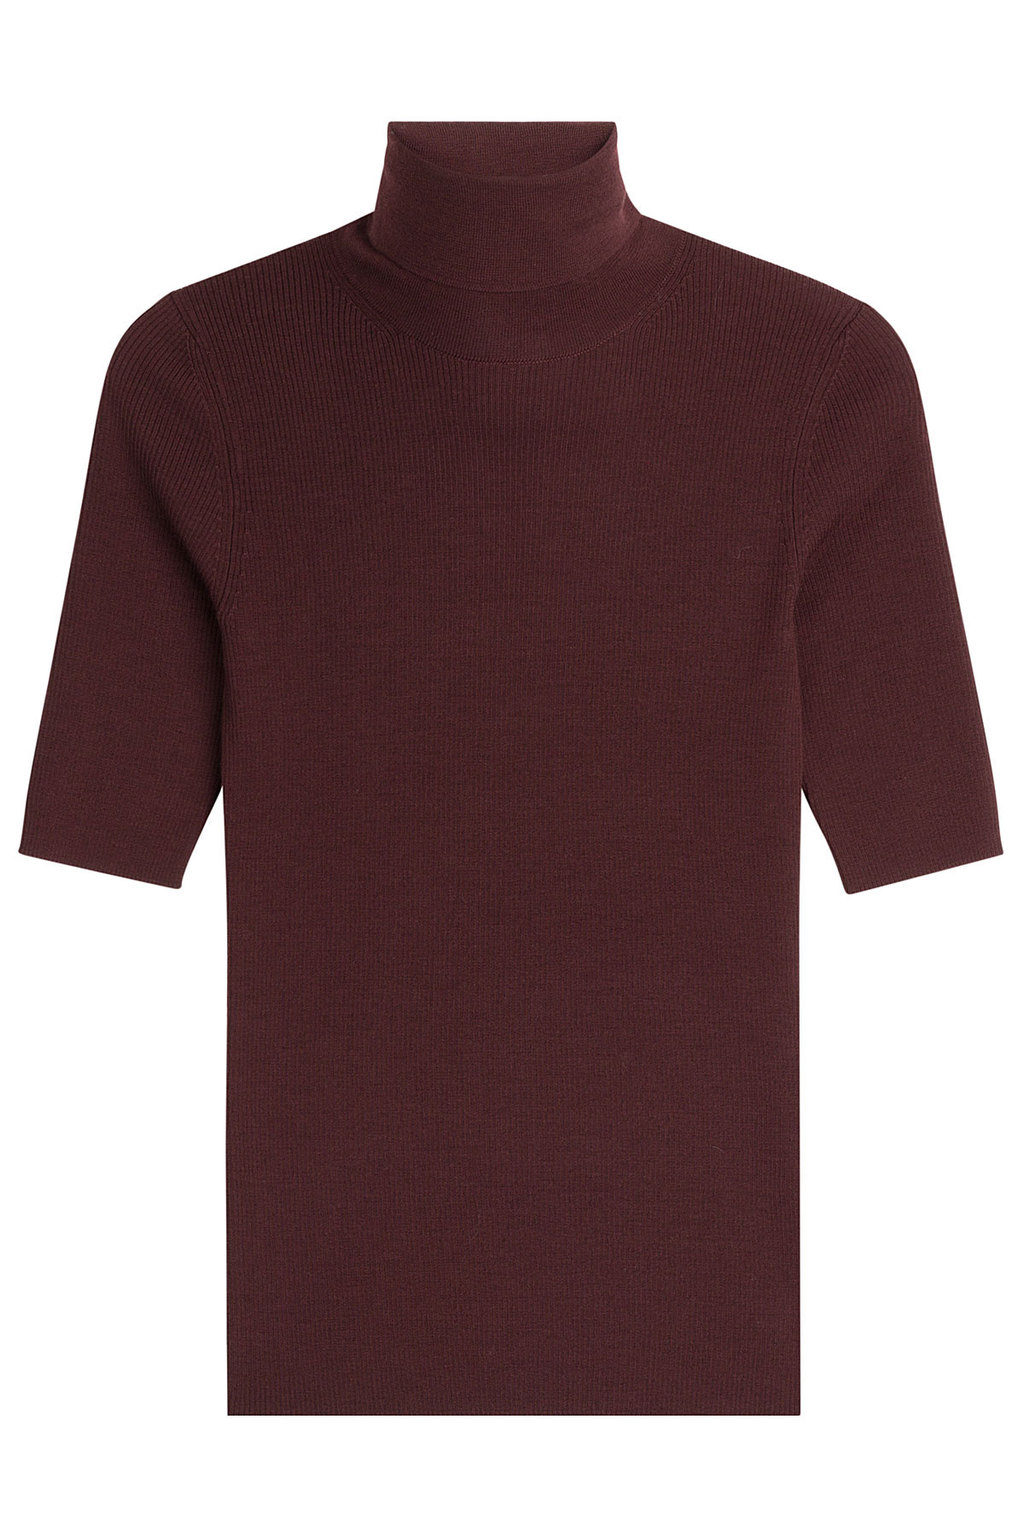 Merino Wool Turtleneck With Short Sleeves Red - pattern: plain; neckline: roll neck; predominant colour: aubergine; occasions: casual; length: standard; style: top; fibres: wool - 100%; fit: body skimming; sleeve length: short sleeve; sleeve style: standard; texture group: knits/crochet; pattern type: knitted - fine stitch; season: a/w 2016